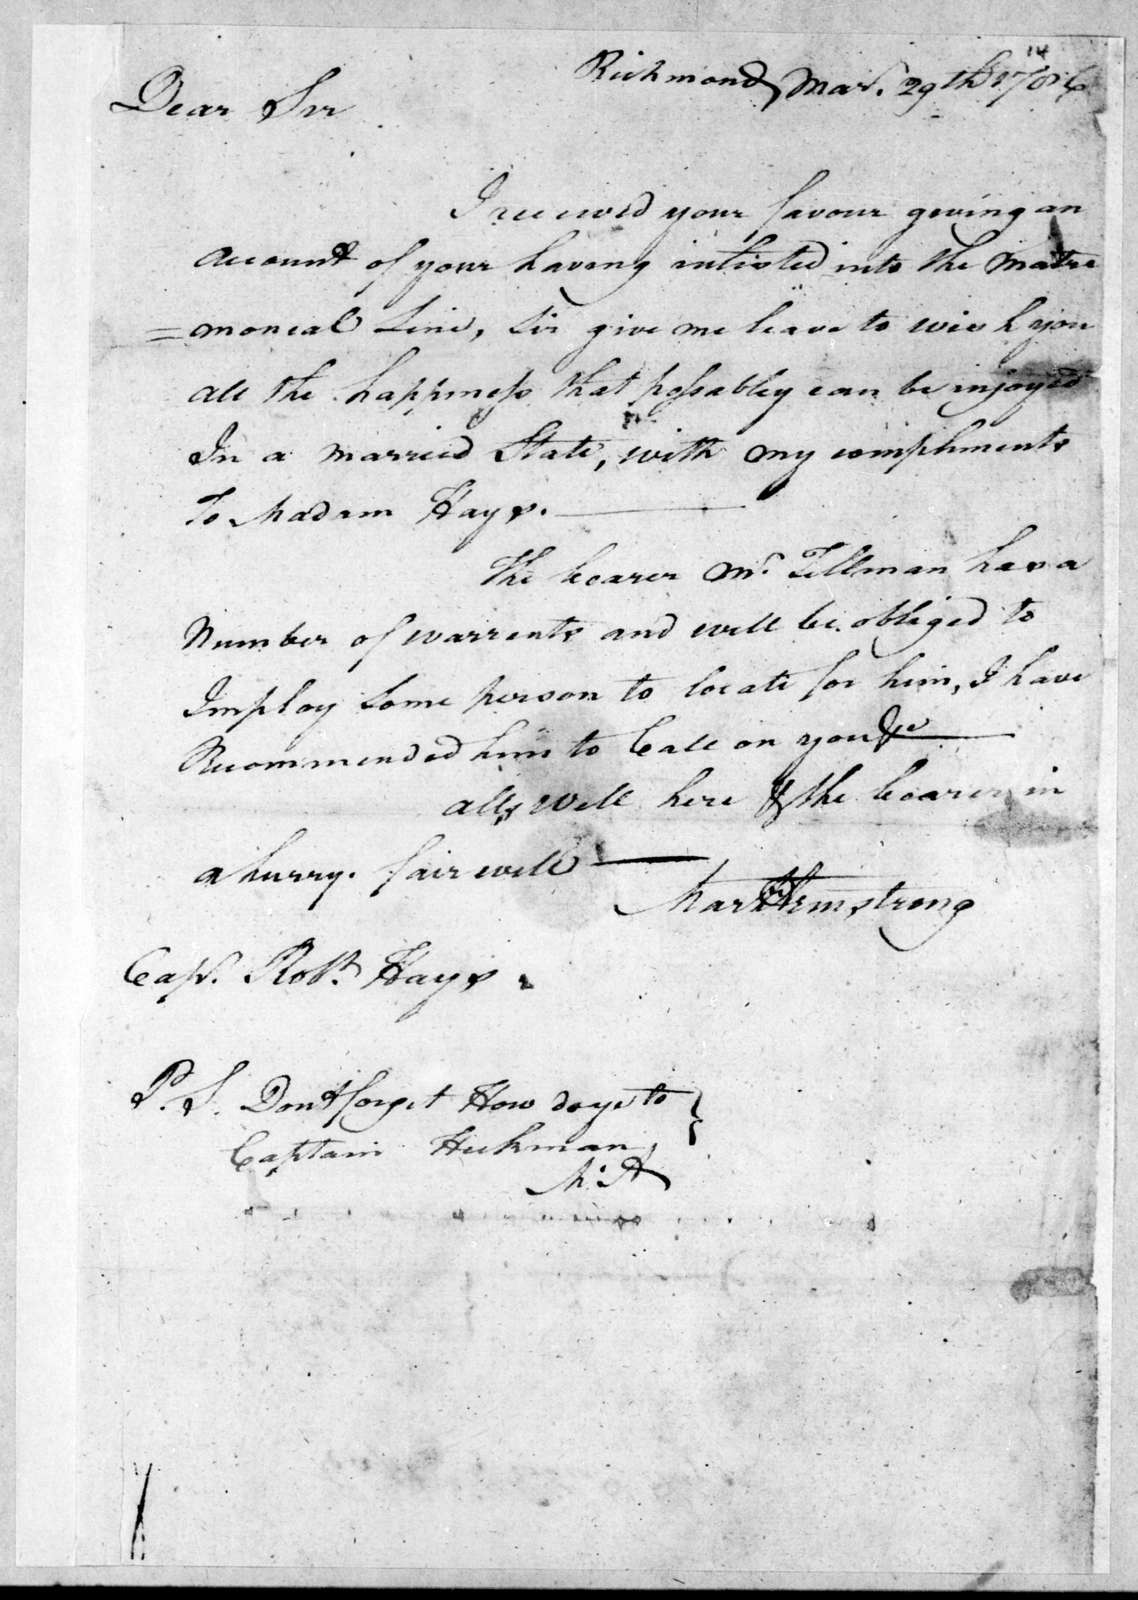 Martin Armstrong to Robert Hays, March 29, 1786